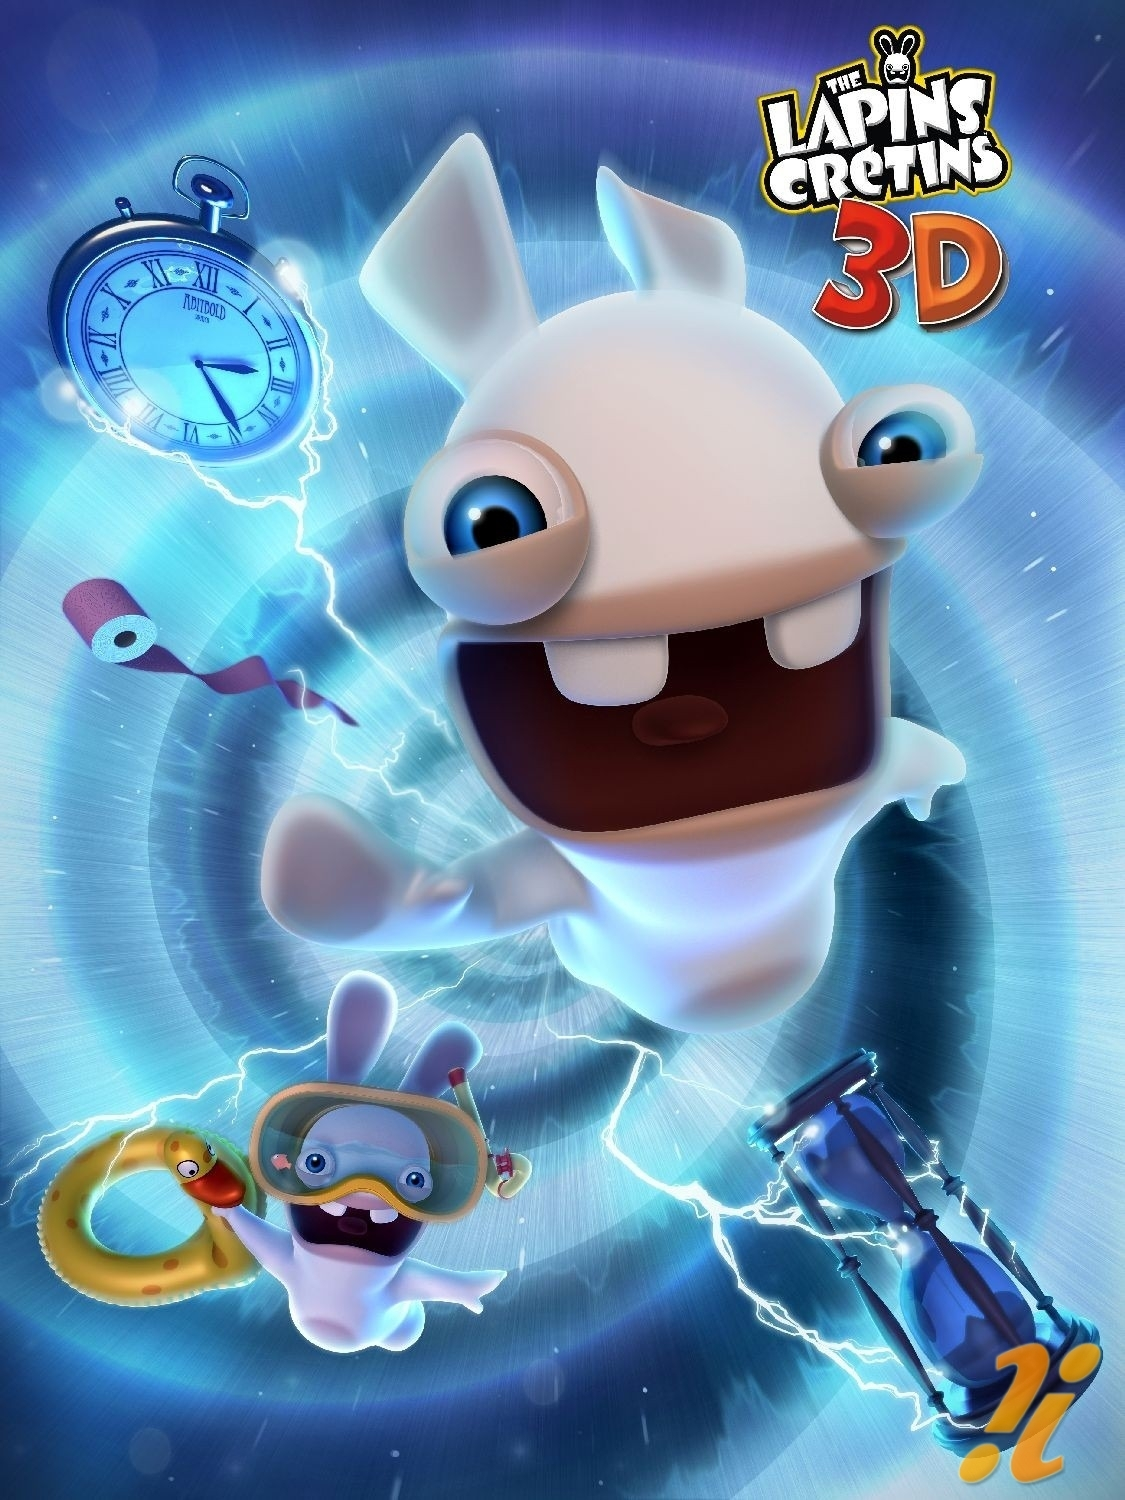 rabbids images rabbids: travel in time 3d hd wallpaper and